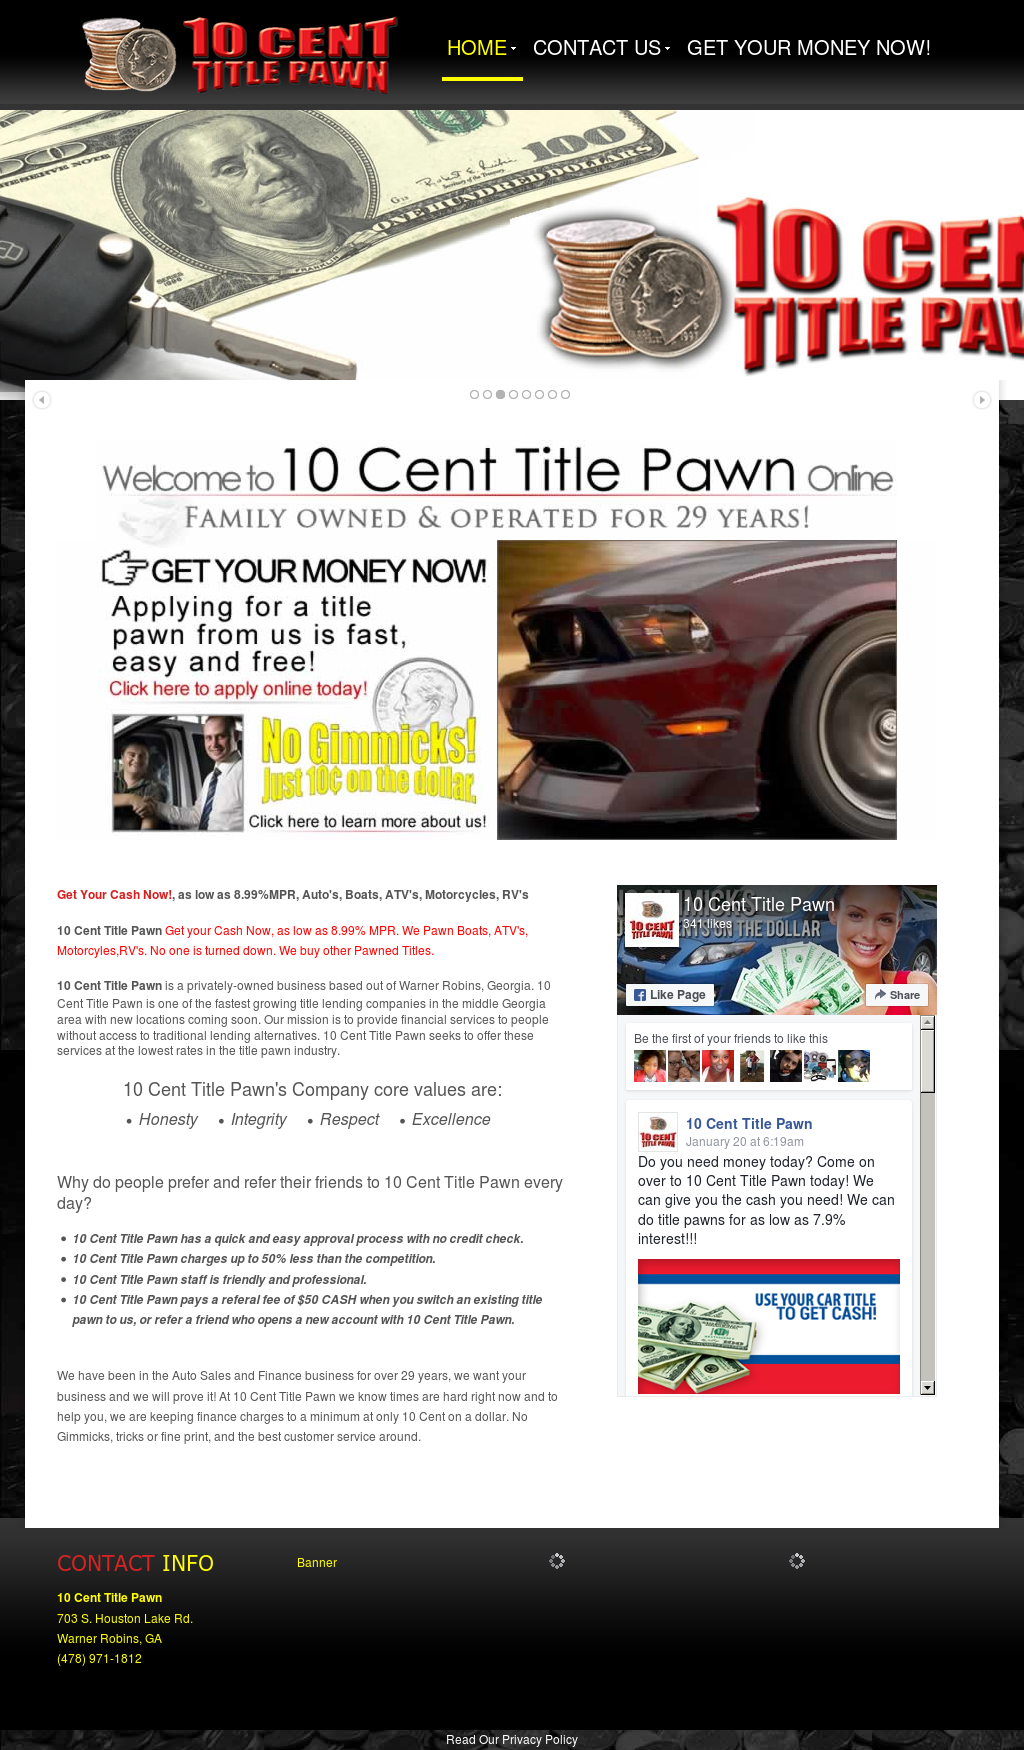 10Centtitlepawn Competitors, Revenue and Employees - Owler